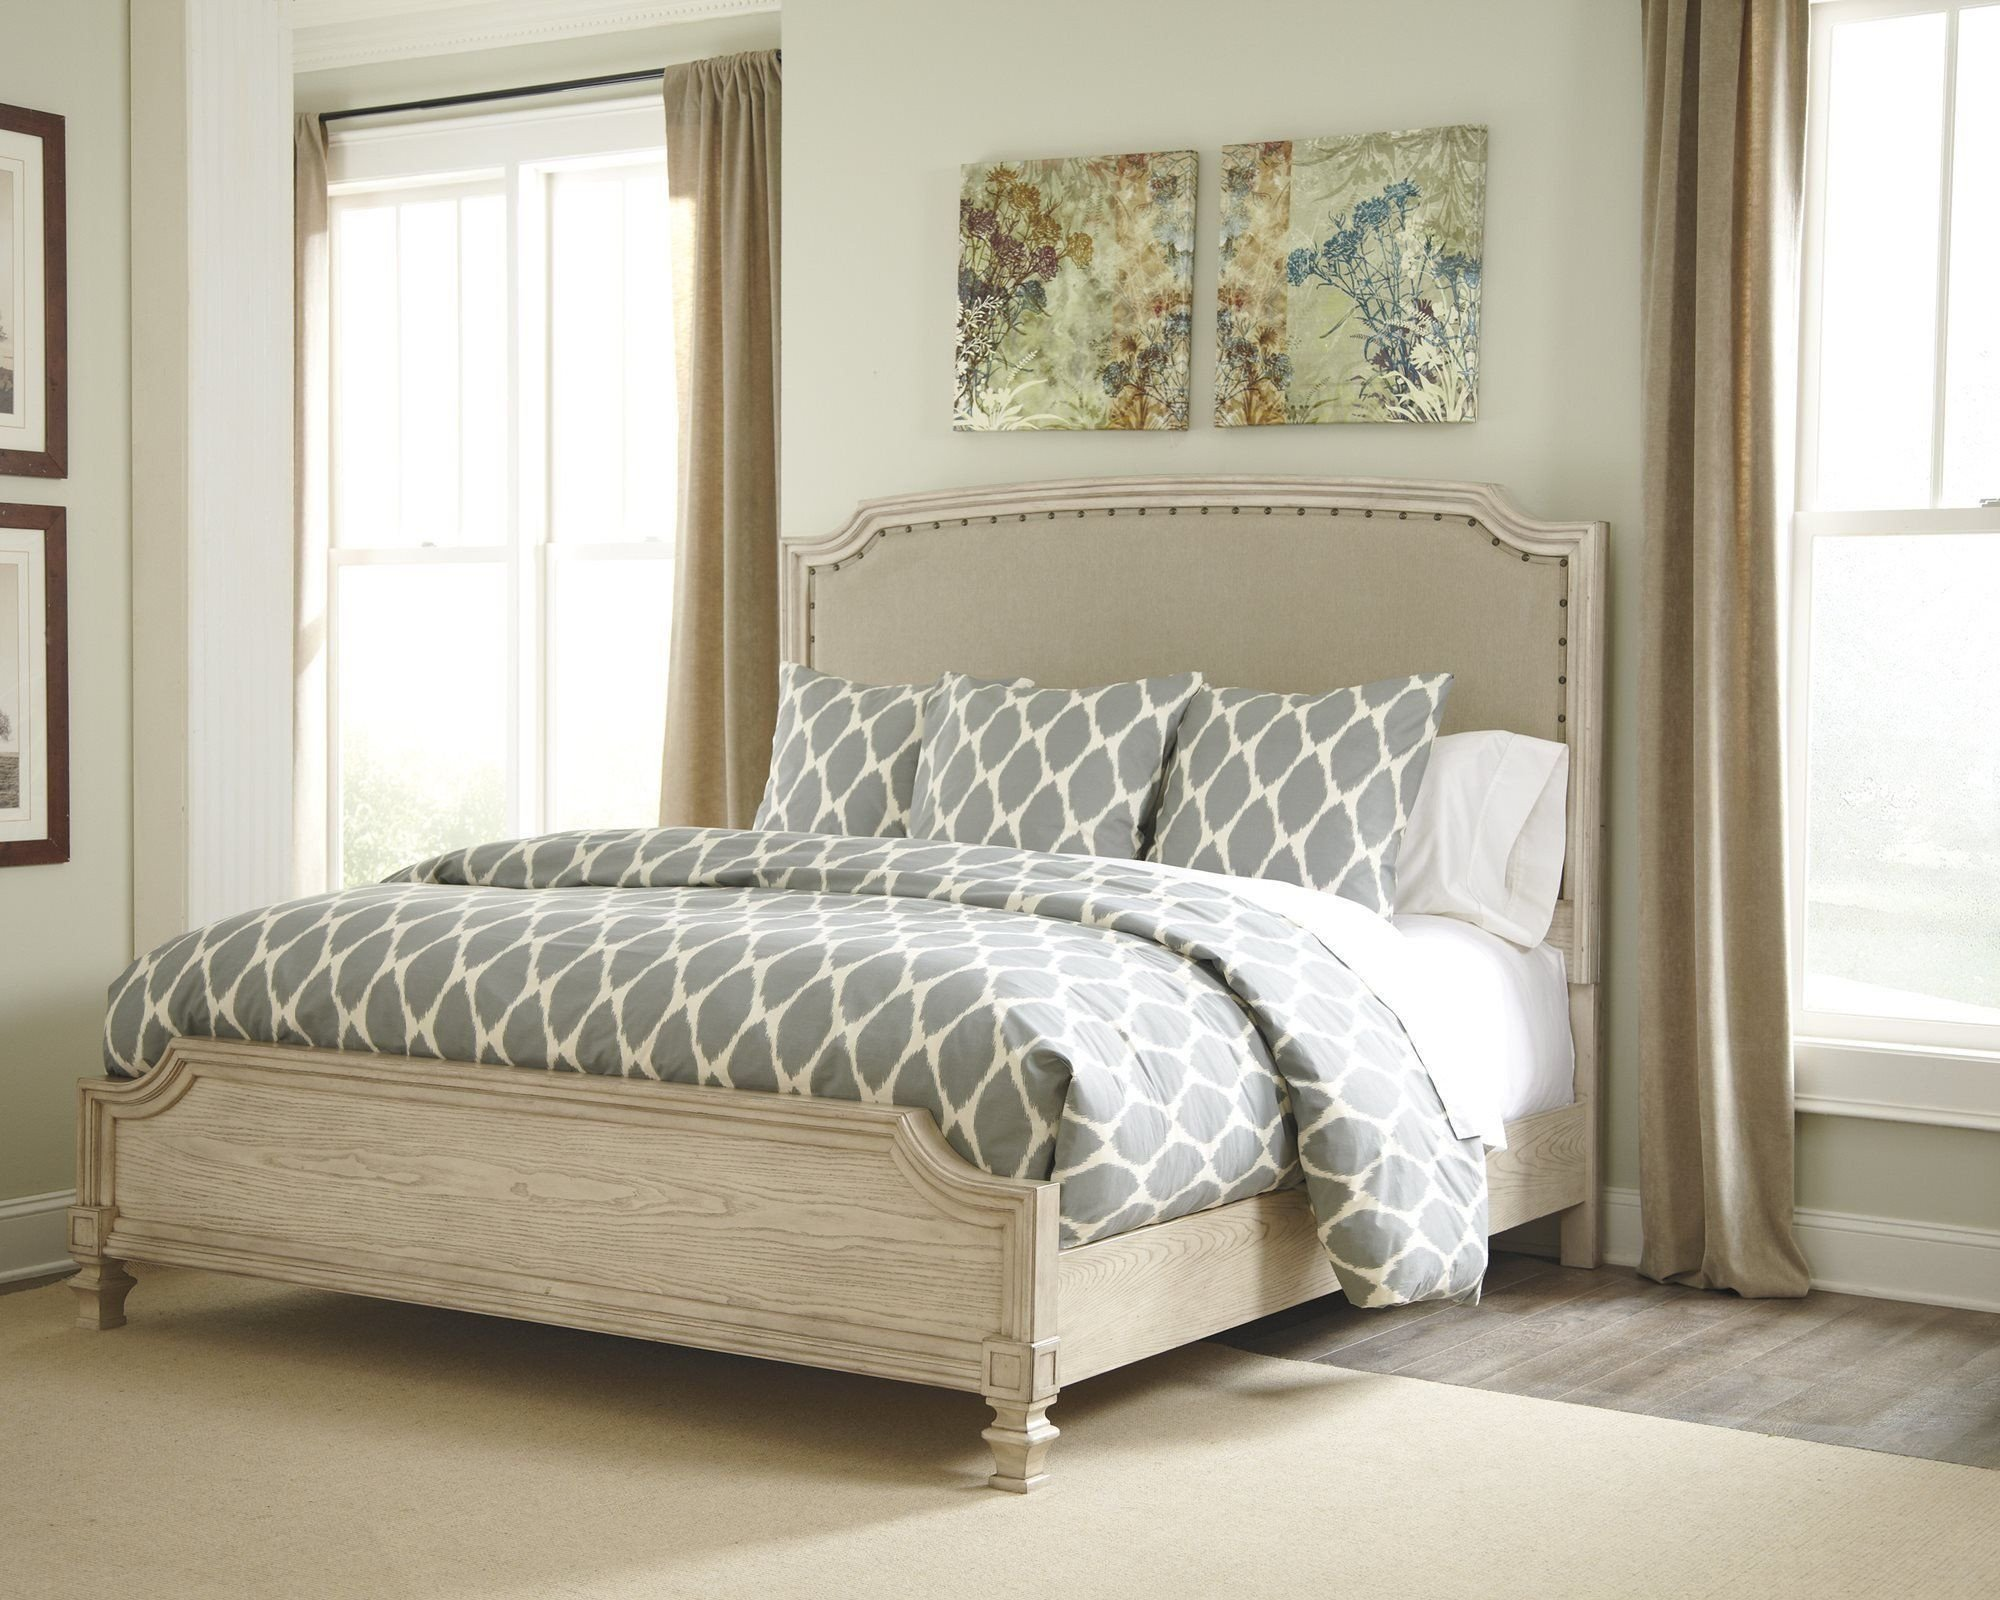 Ashley White Bedroom Set Unique ashley Demarlos Queen Upholstered Bed In Parchment White